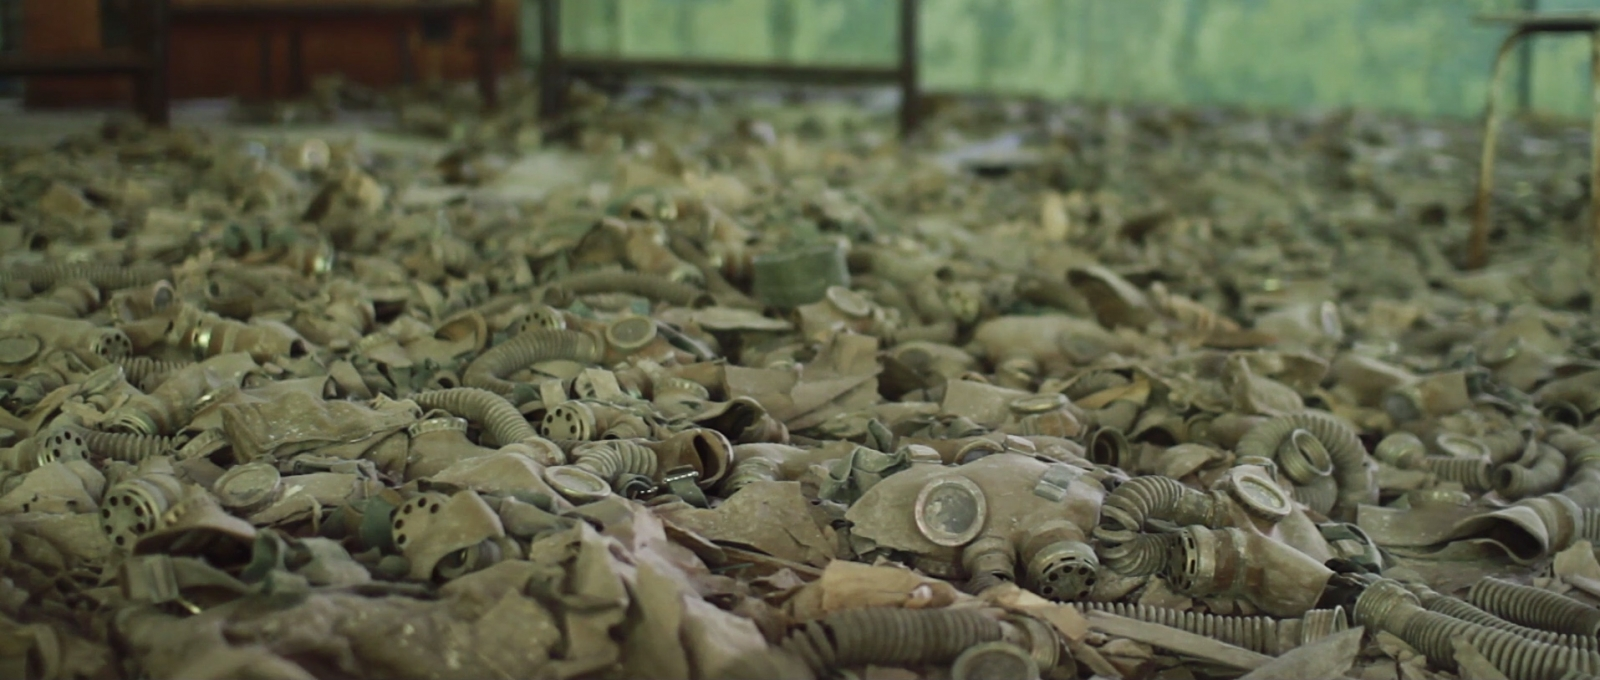 Hundreds of gas masks litter the floors of a building in Pripyat, abandoned by evacuees